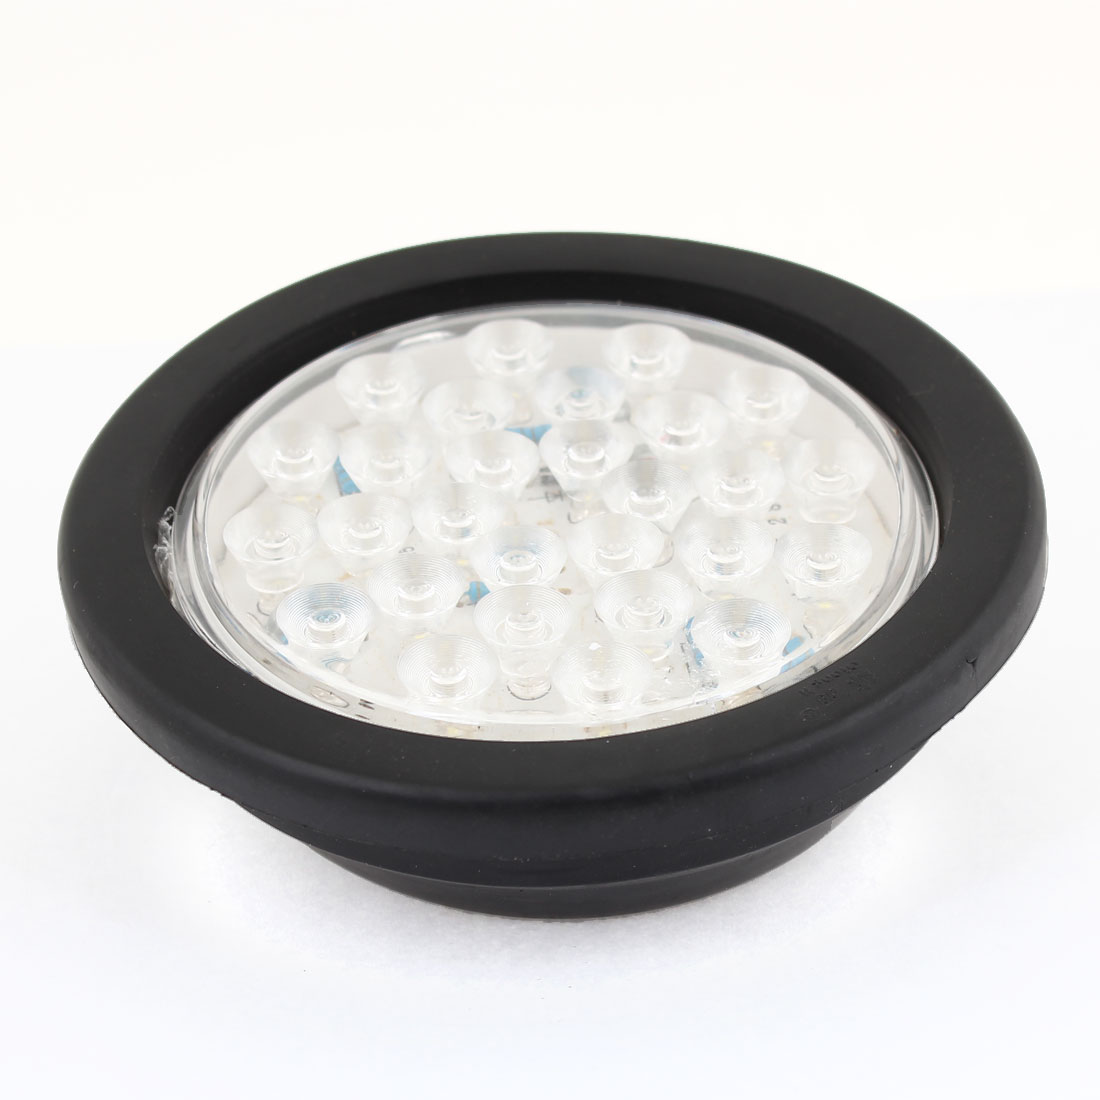 White 28 LED Round Shaped Plastic Lens Signal Tail Light for Truck